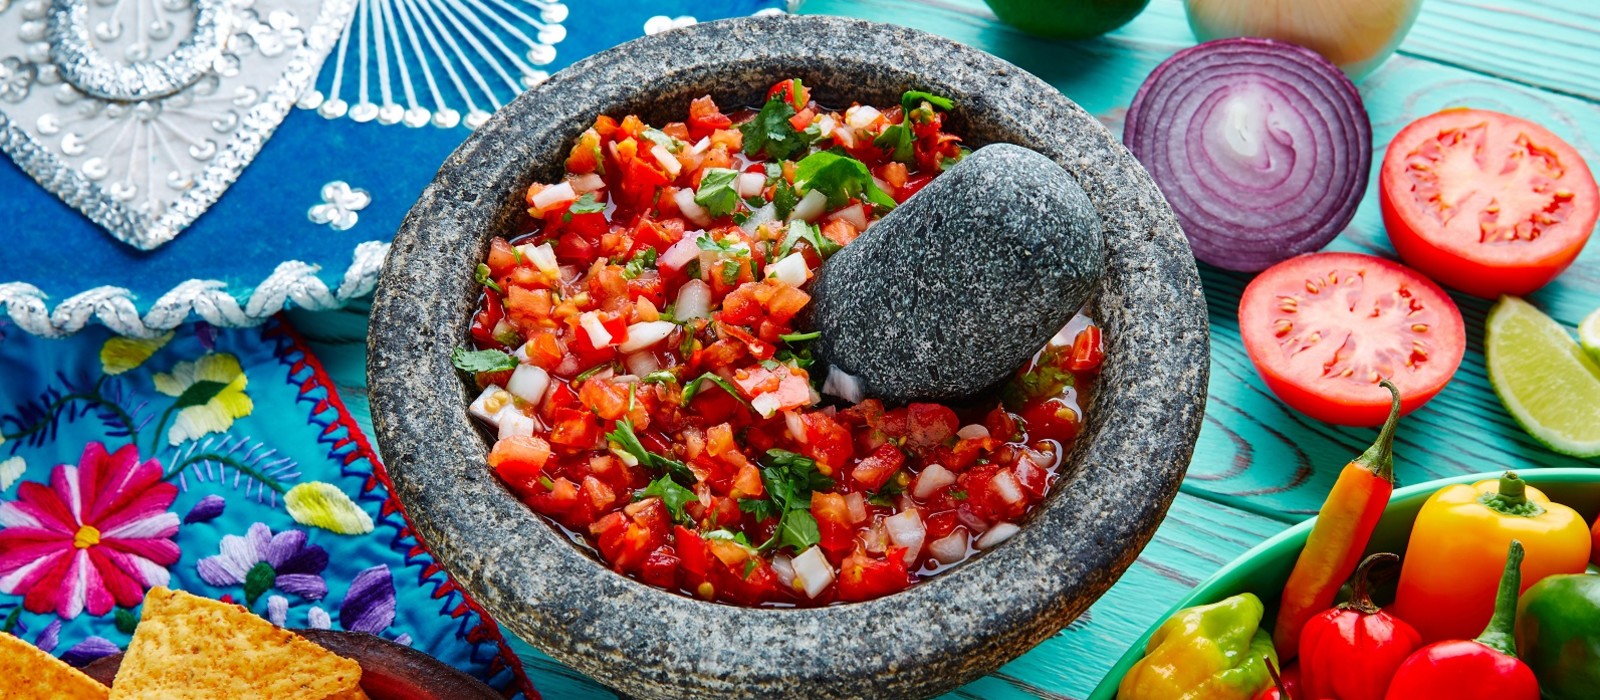 Mexican cuisine Pico de Gallo sauce from Mexico with tomato cilantro and onion in molcajete